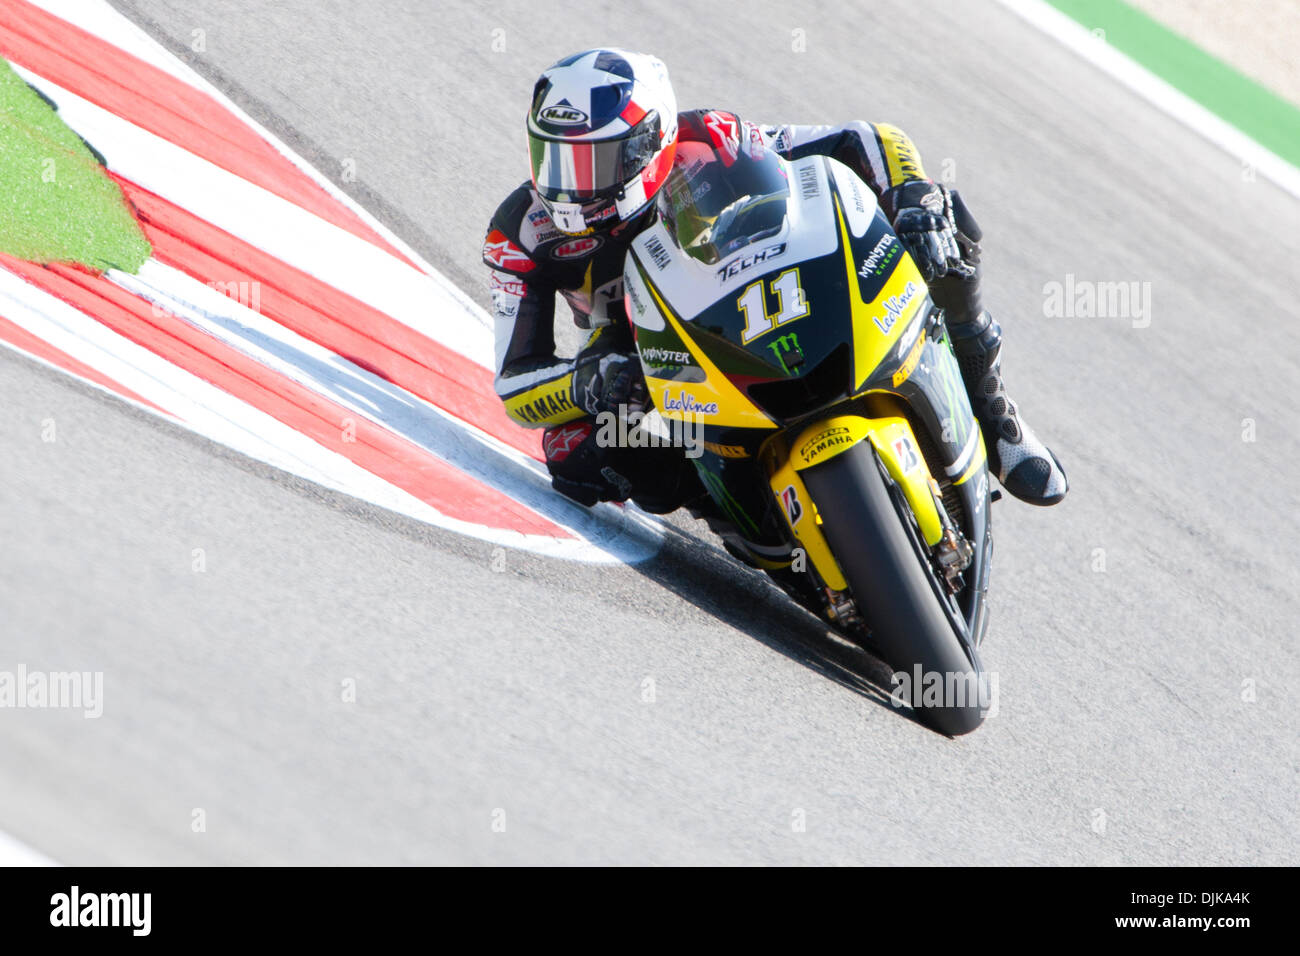 Sep. 03, 2010 - Misano Adriatico, Italy - Yamaha Tech 3 rider Ben Spies (USA #11) during the first MotoGP practice session for the San Marino GP in Misano Adriatico, Italy. Spies finished the practice at the 6th place. (Credit Image: © Andrea Ranalli/Southcreek Global/ZUMApress.com) - Stock Image